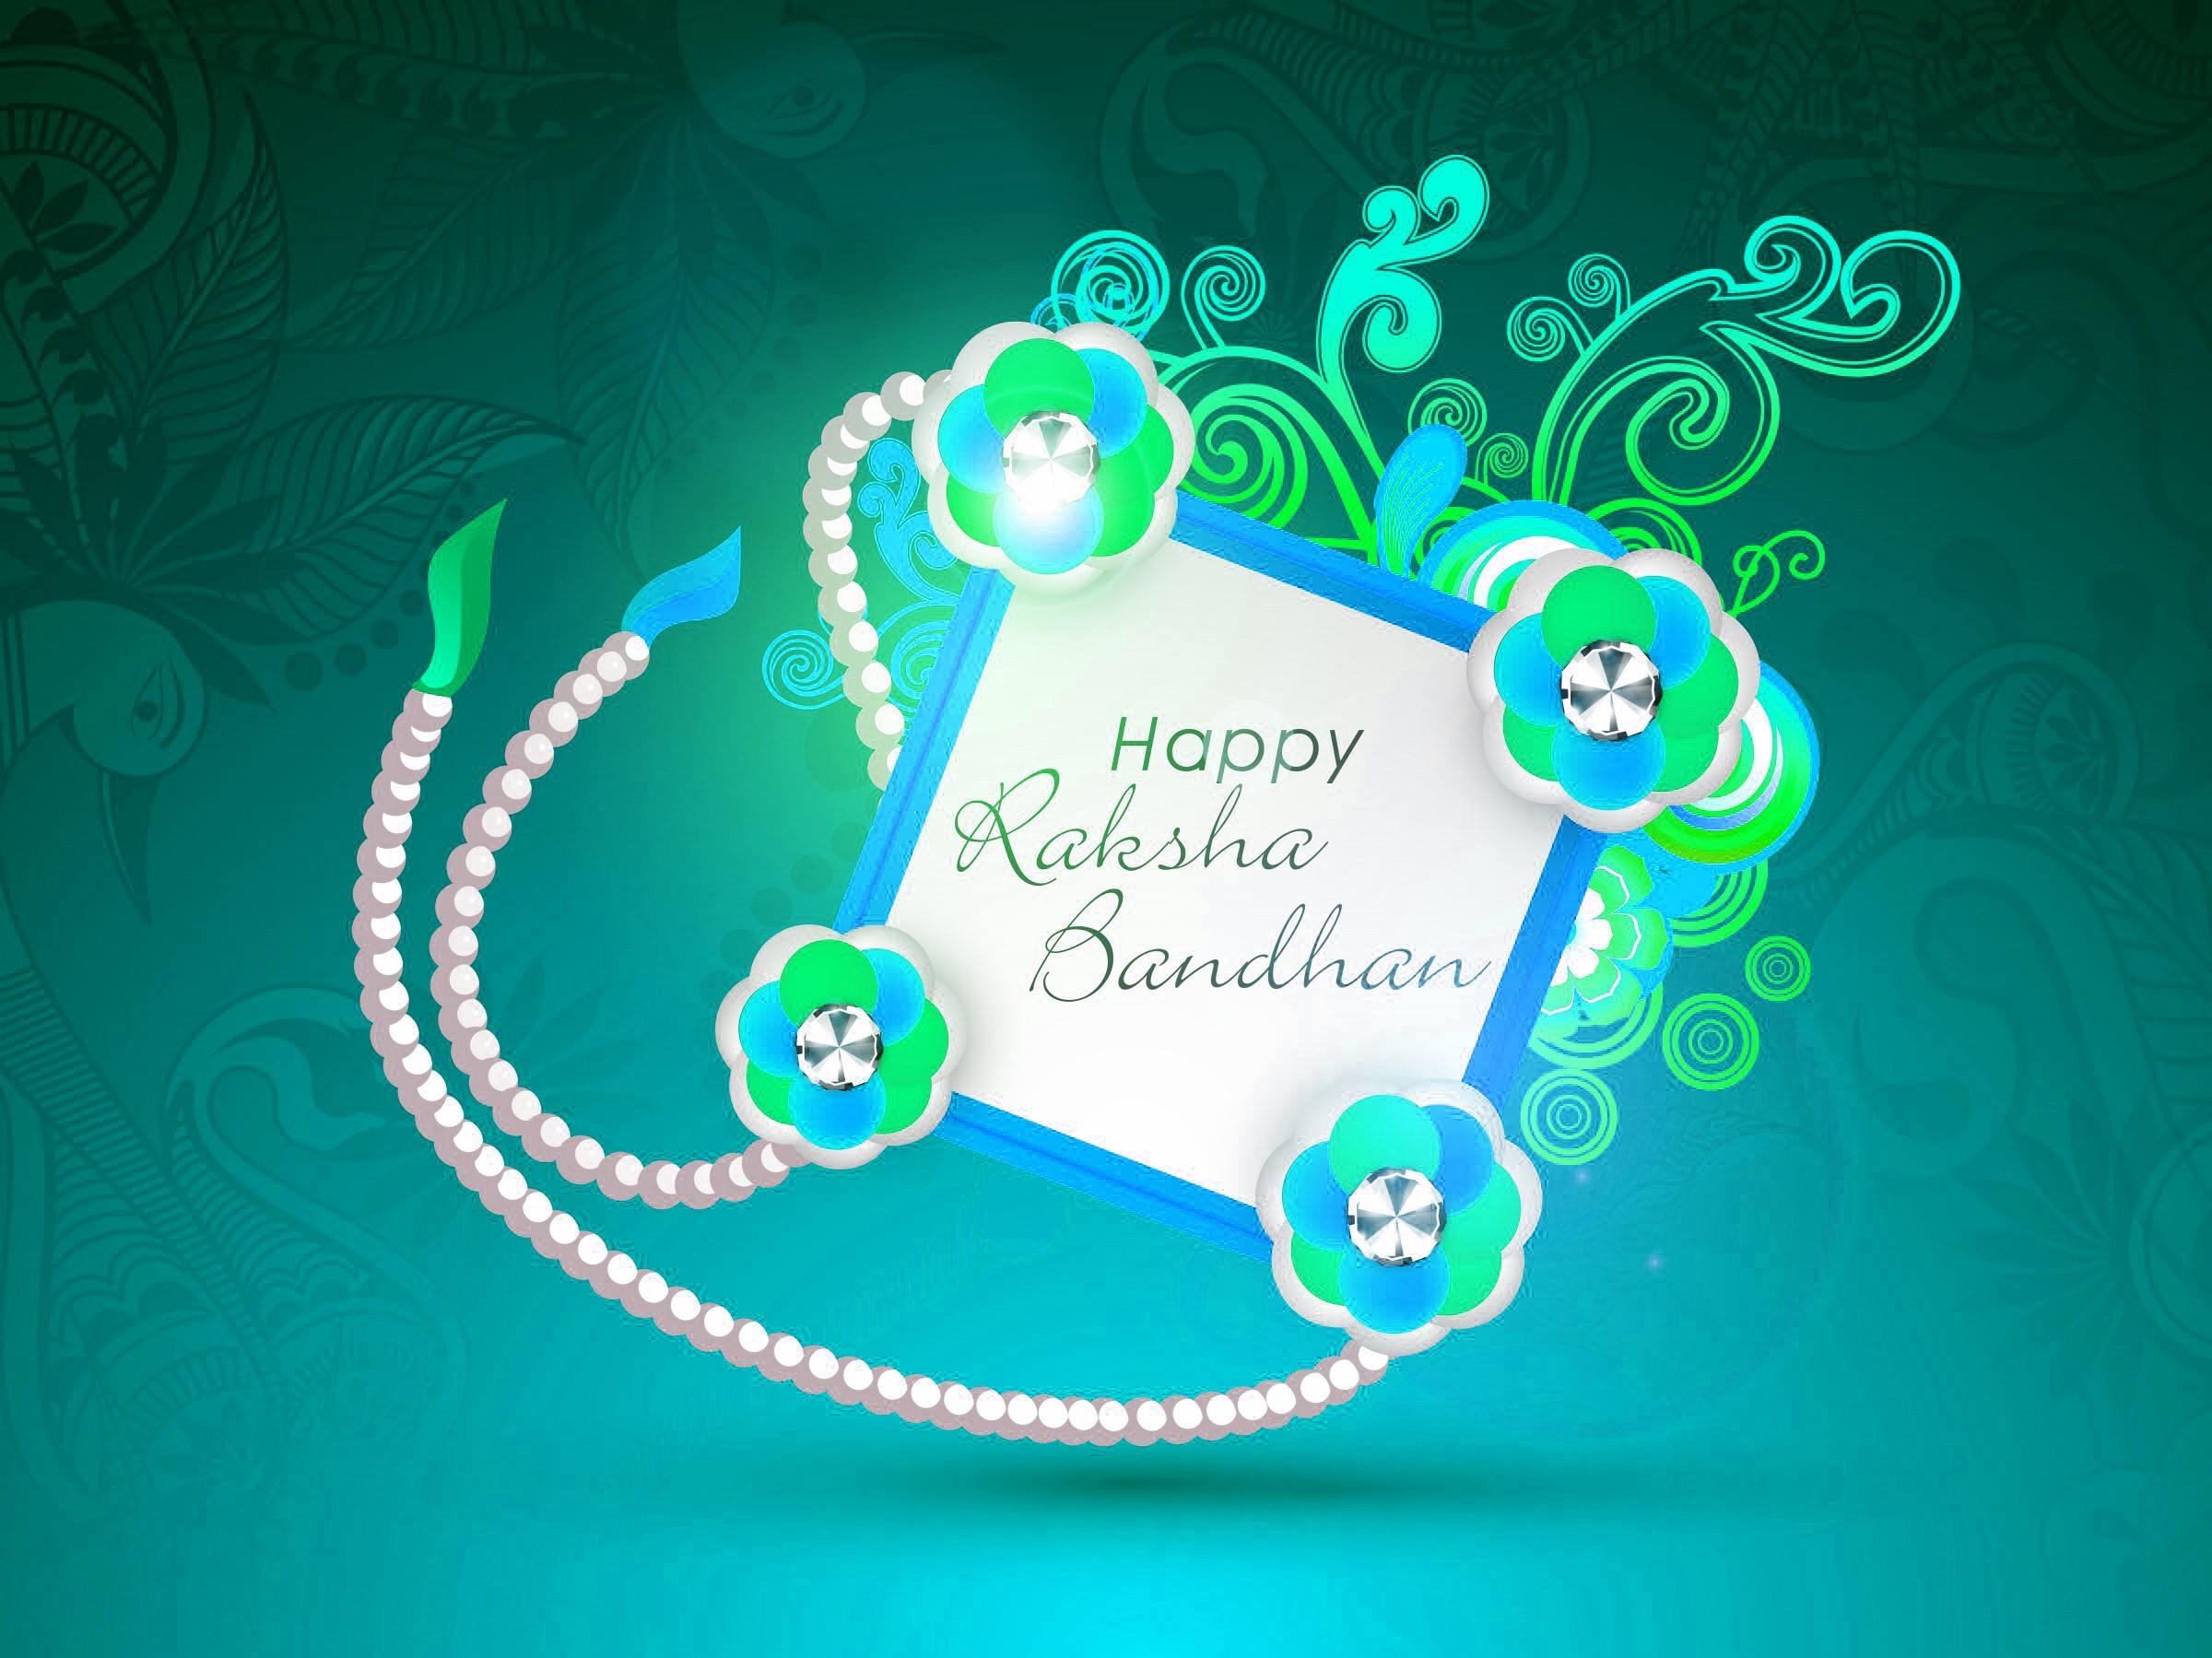 raksha bandhan happy wishes new hd image download